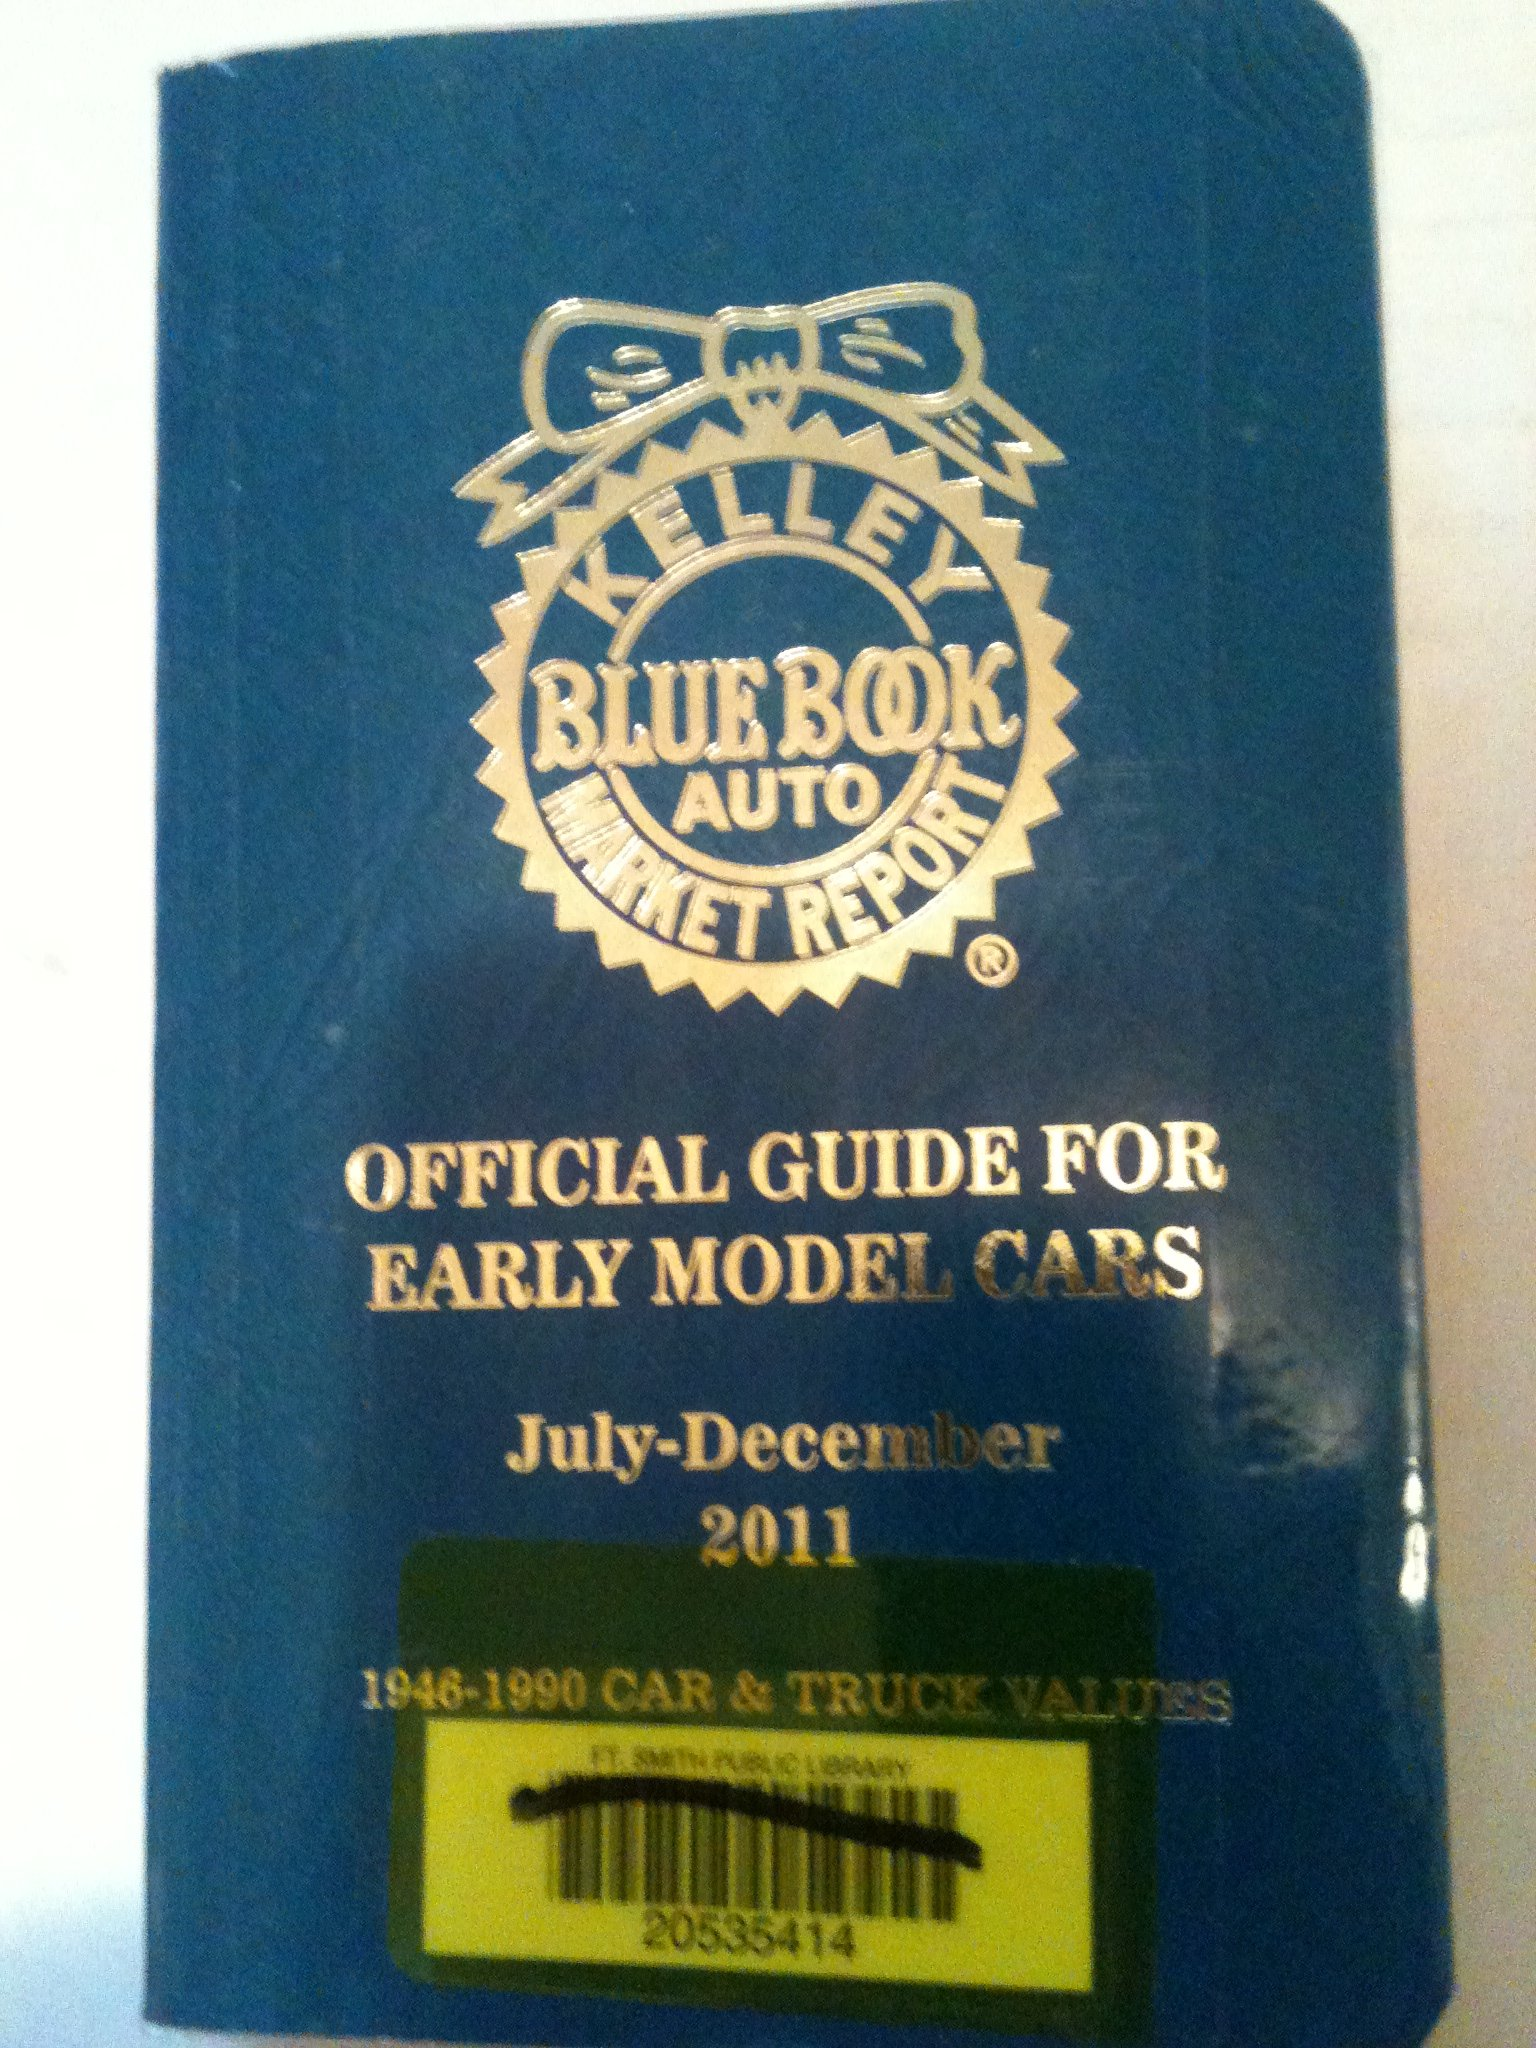 Kelley Blue Book Official Guide for Early Model Cars July - December 2011  1946 - 1990 Car & Truck Values Collector's Edition (Vol.